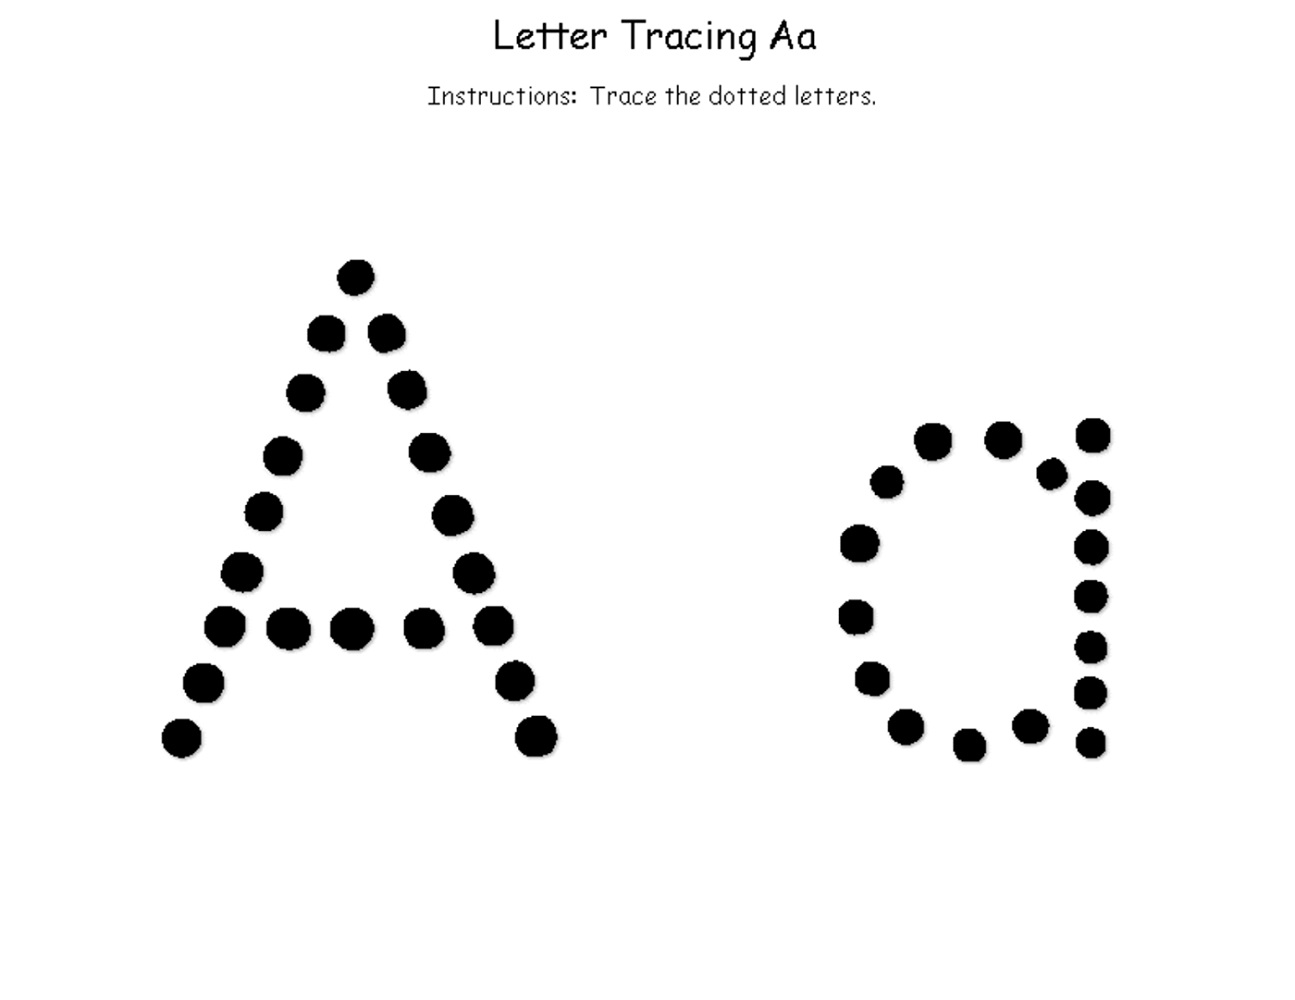 Trace Letter A Dotted Letter